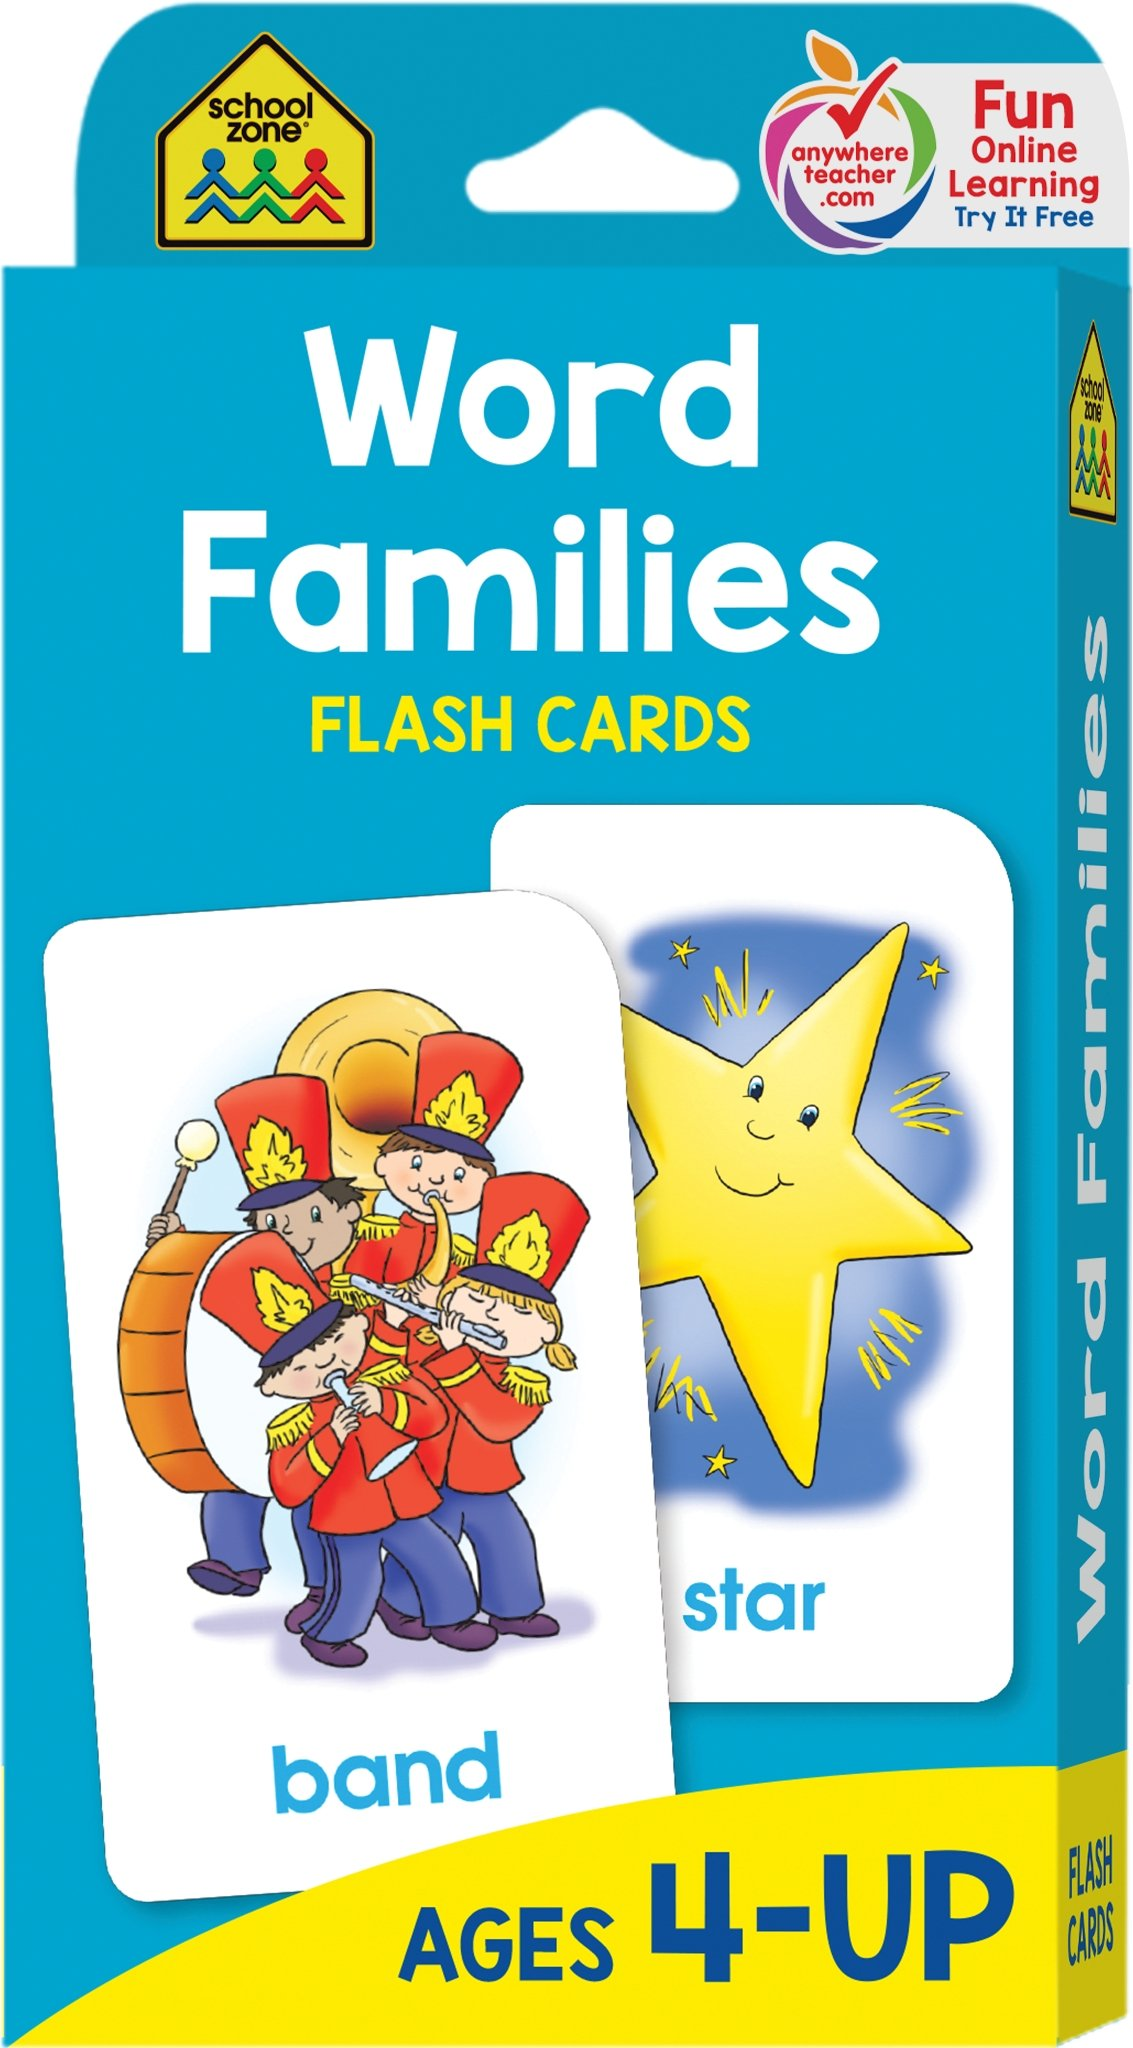 Word Families: Flash Cards (Inglese) Carte – 13 giu 1996 School Zone School Zone Pub Co 0938256823 27135445